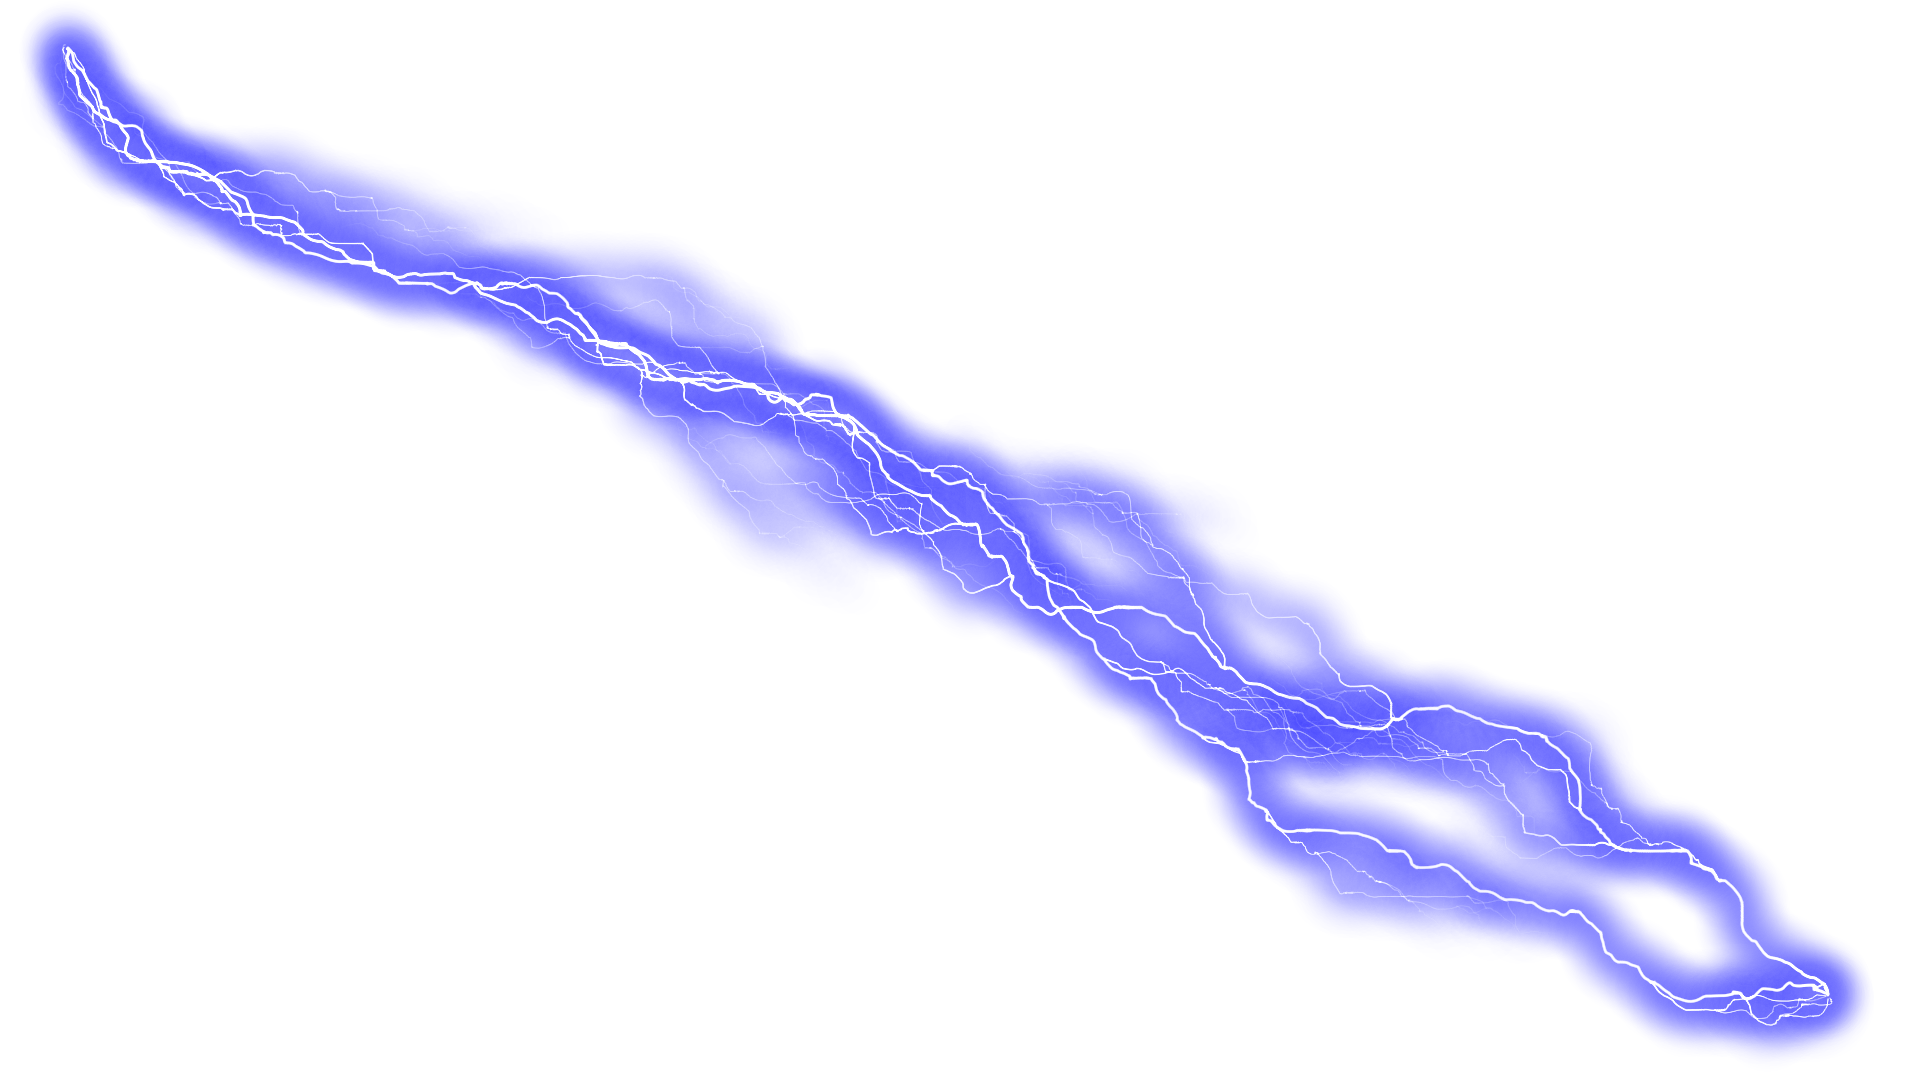 electric effect png